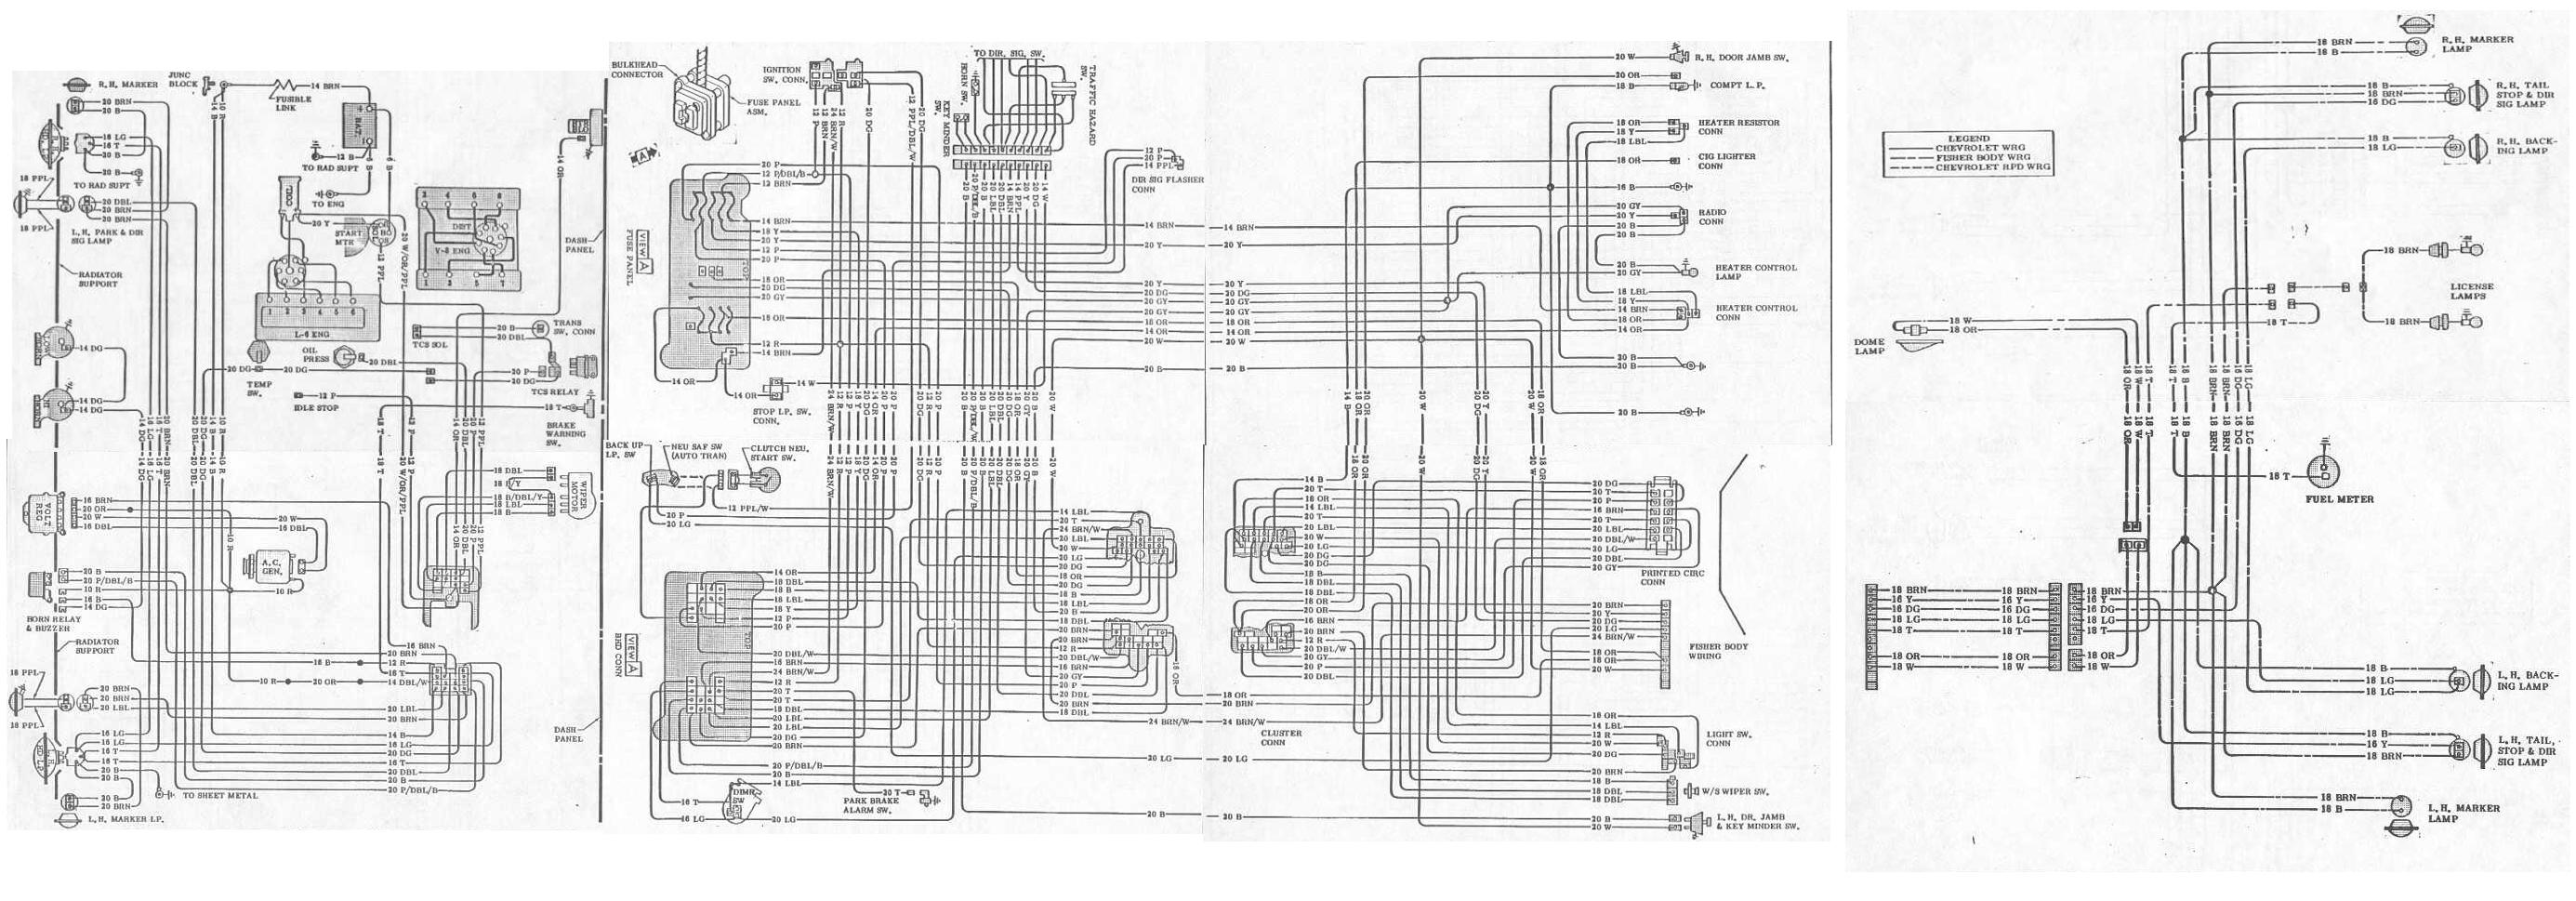 1979 Trans Am Fuse Box Wiring Library Chevy Custom Deluxe 1981 Diagram Example Electrical U2022 79 Pontiac Blue